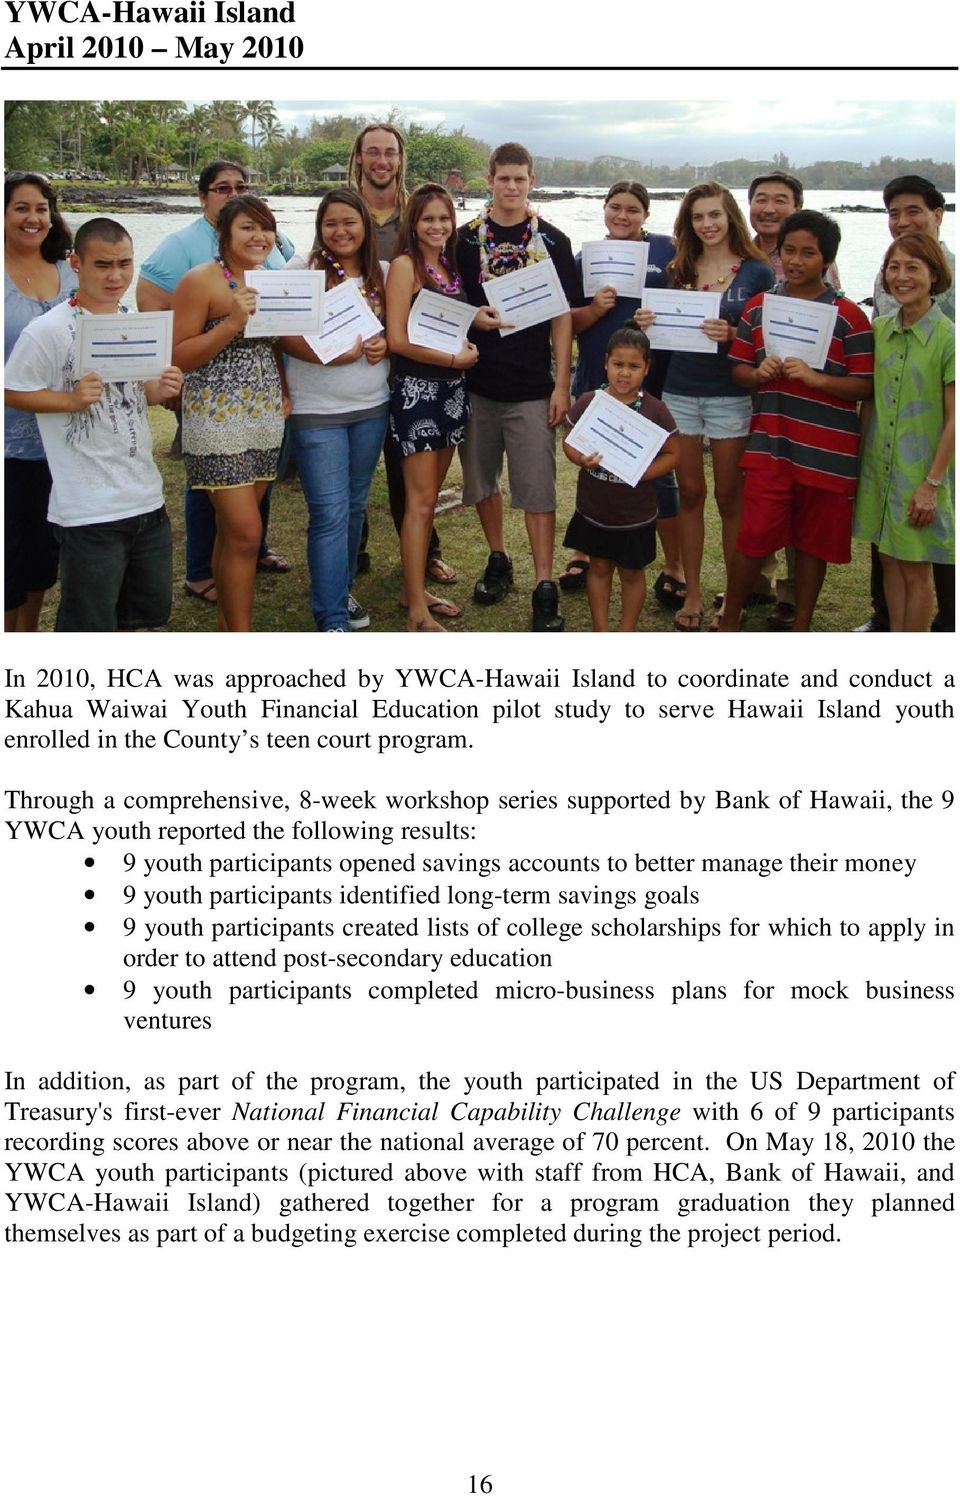 Through a comprehensive, 8-week workshop series supported by Bank of Hawaii, the 9 YWCA youth reported the following results: 9 youth participants opened savings accounts to better manage their money